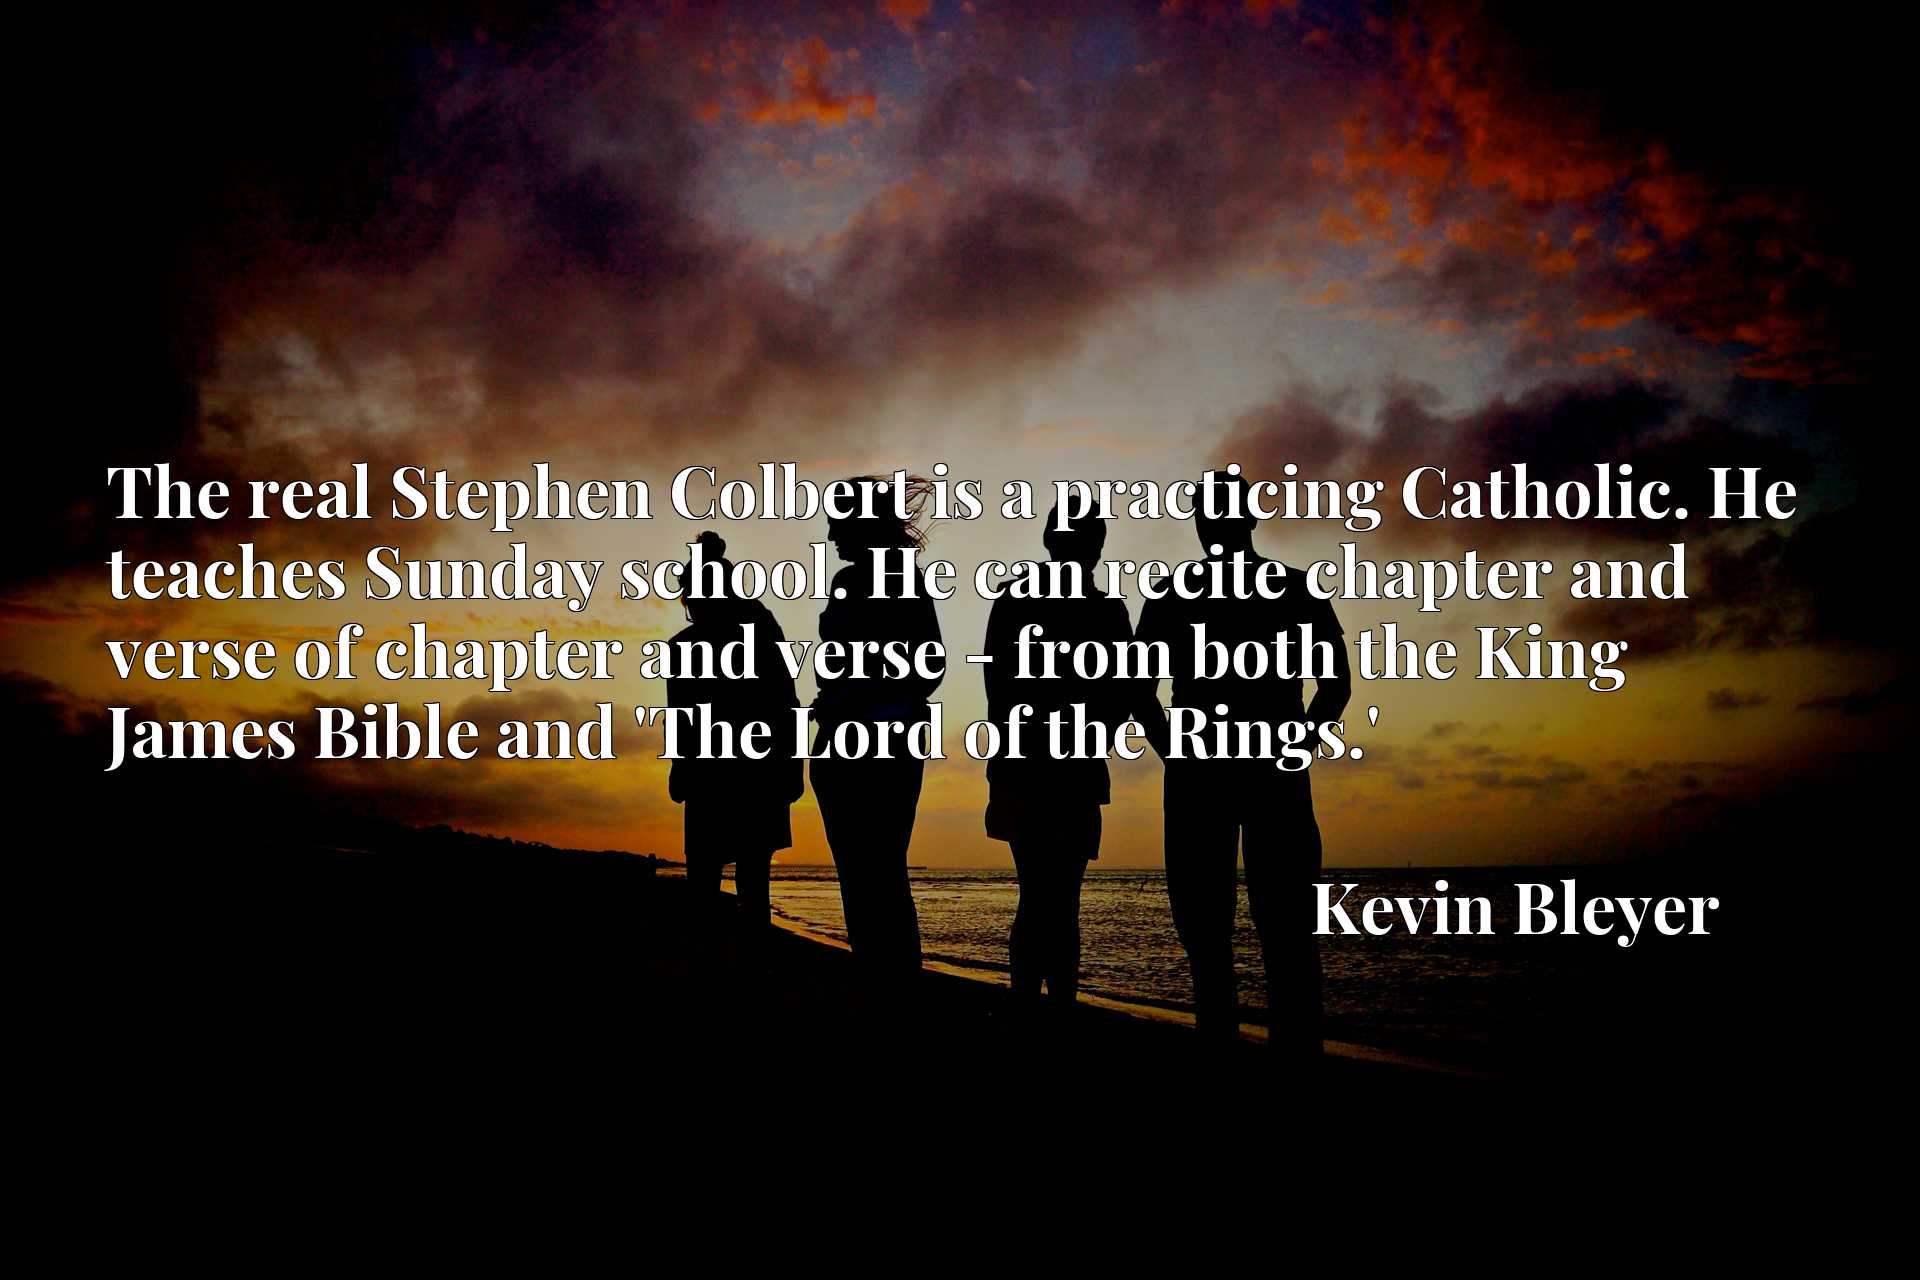 The real Stephen Colbert is a practicing Catholic. He teaches Sunday school. He can recite chapter and verse of chapter and verse - from both the King James Bible and 'The Lord of the Rings.'